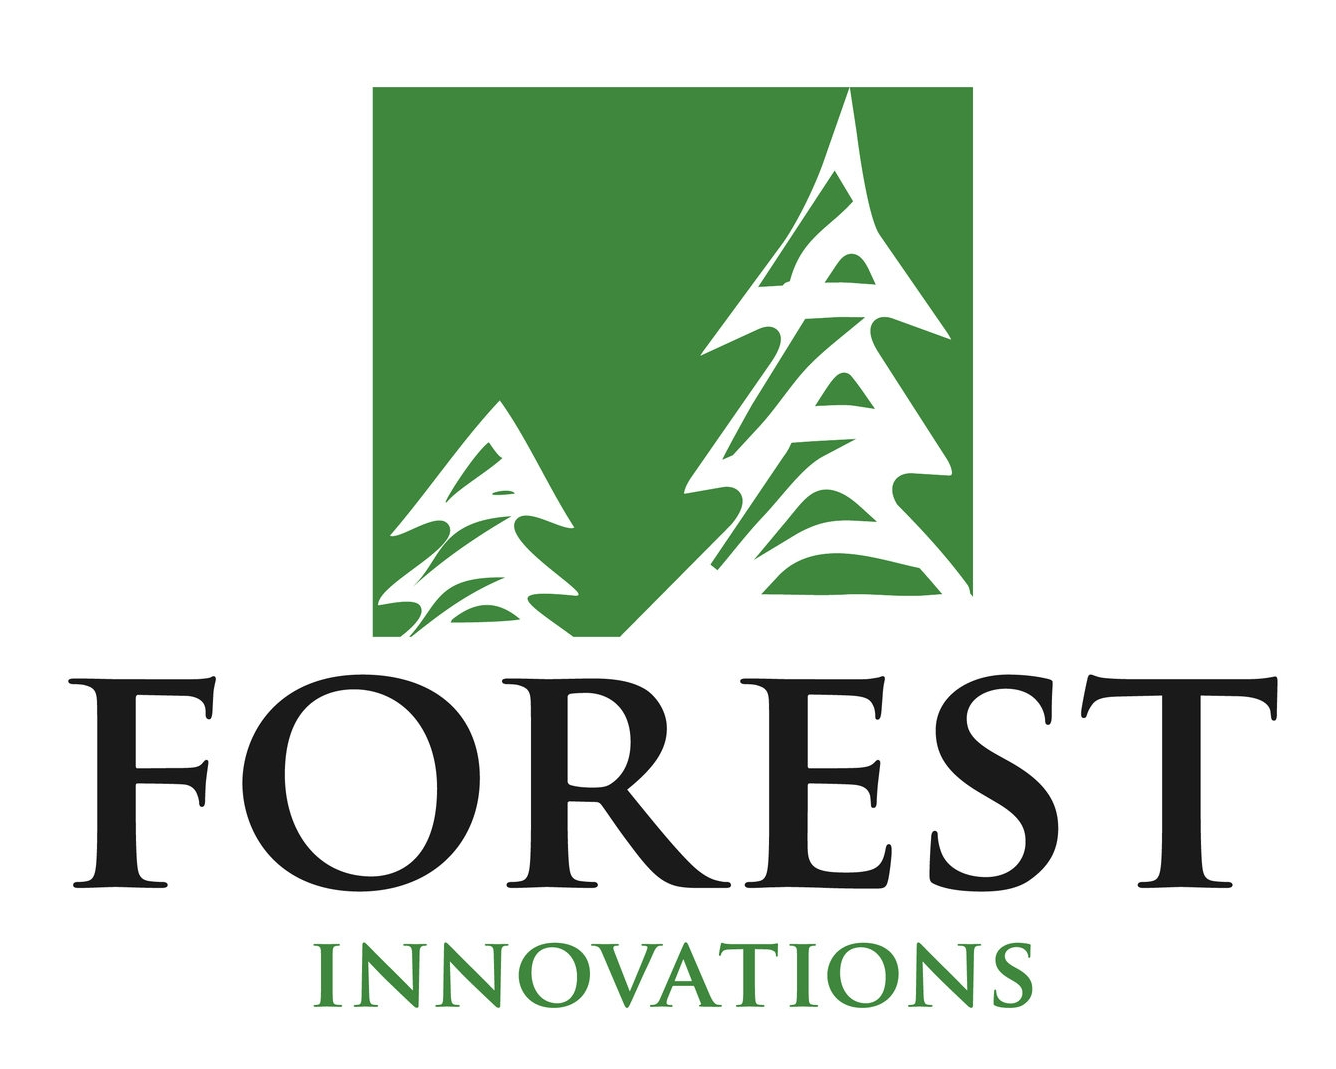 Forest Innovations